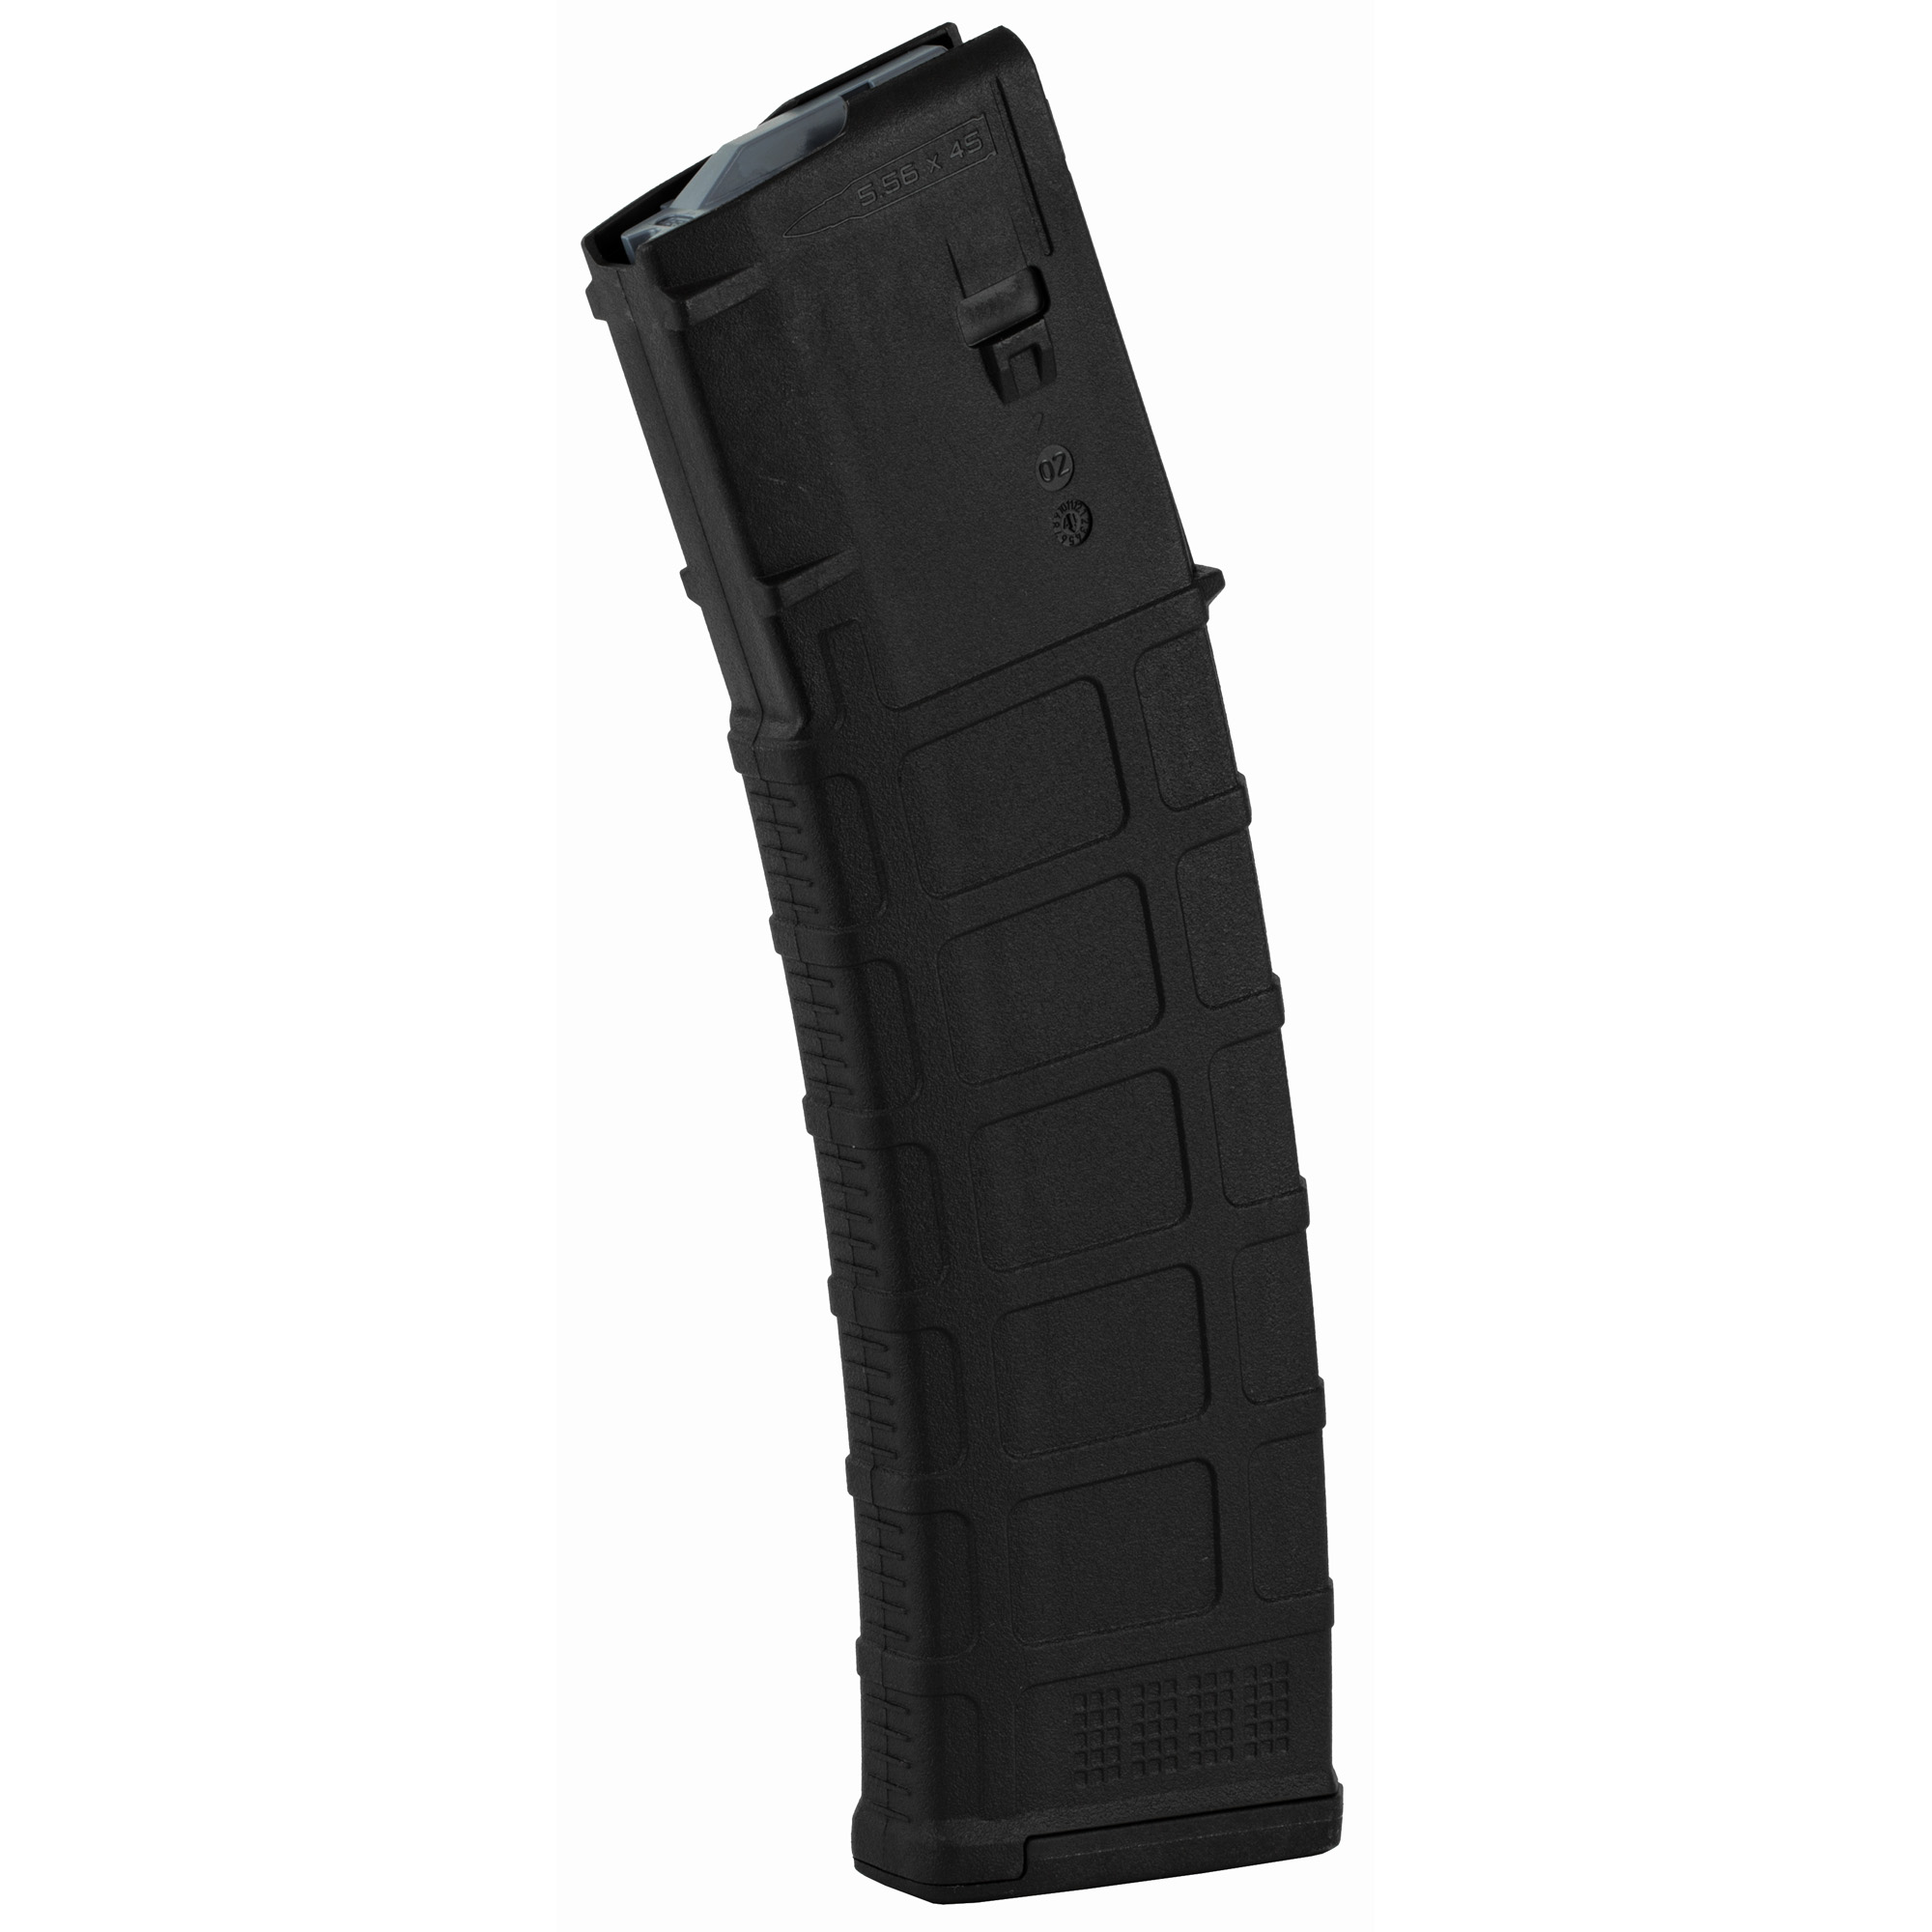 """The next-generation PMAG 40 GEN M3 is a 40-round 5.56x45 NATO (.223 Remington) polymer magazine for AR15/M4 compatible weapons. Along with expanded feature set and compatibility"""" the GEN M3 incorporates new material technology and manufacturing processes for enhanced strength"""" durability"""" and reliability to exceed rigorous military performance specifications. While the GEN M3 is optimized for Colt-spec AR15/M4 platforms"""" modified internal and external geometry also permits operation with a range of additional weapons such as the HK(R) 416/MR556A1/M27 IAR"""" British SA-80"""" FN(R) SCAR(TM) MK 16/16S"""" and others."""